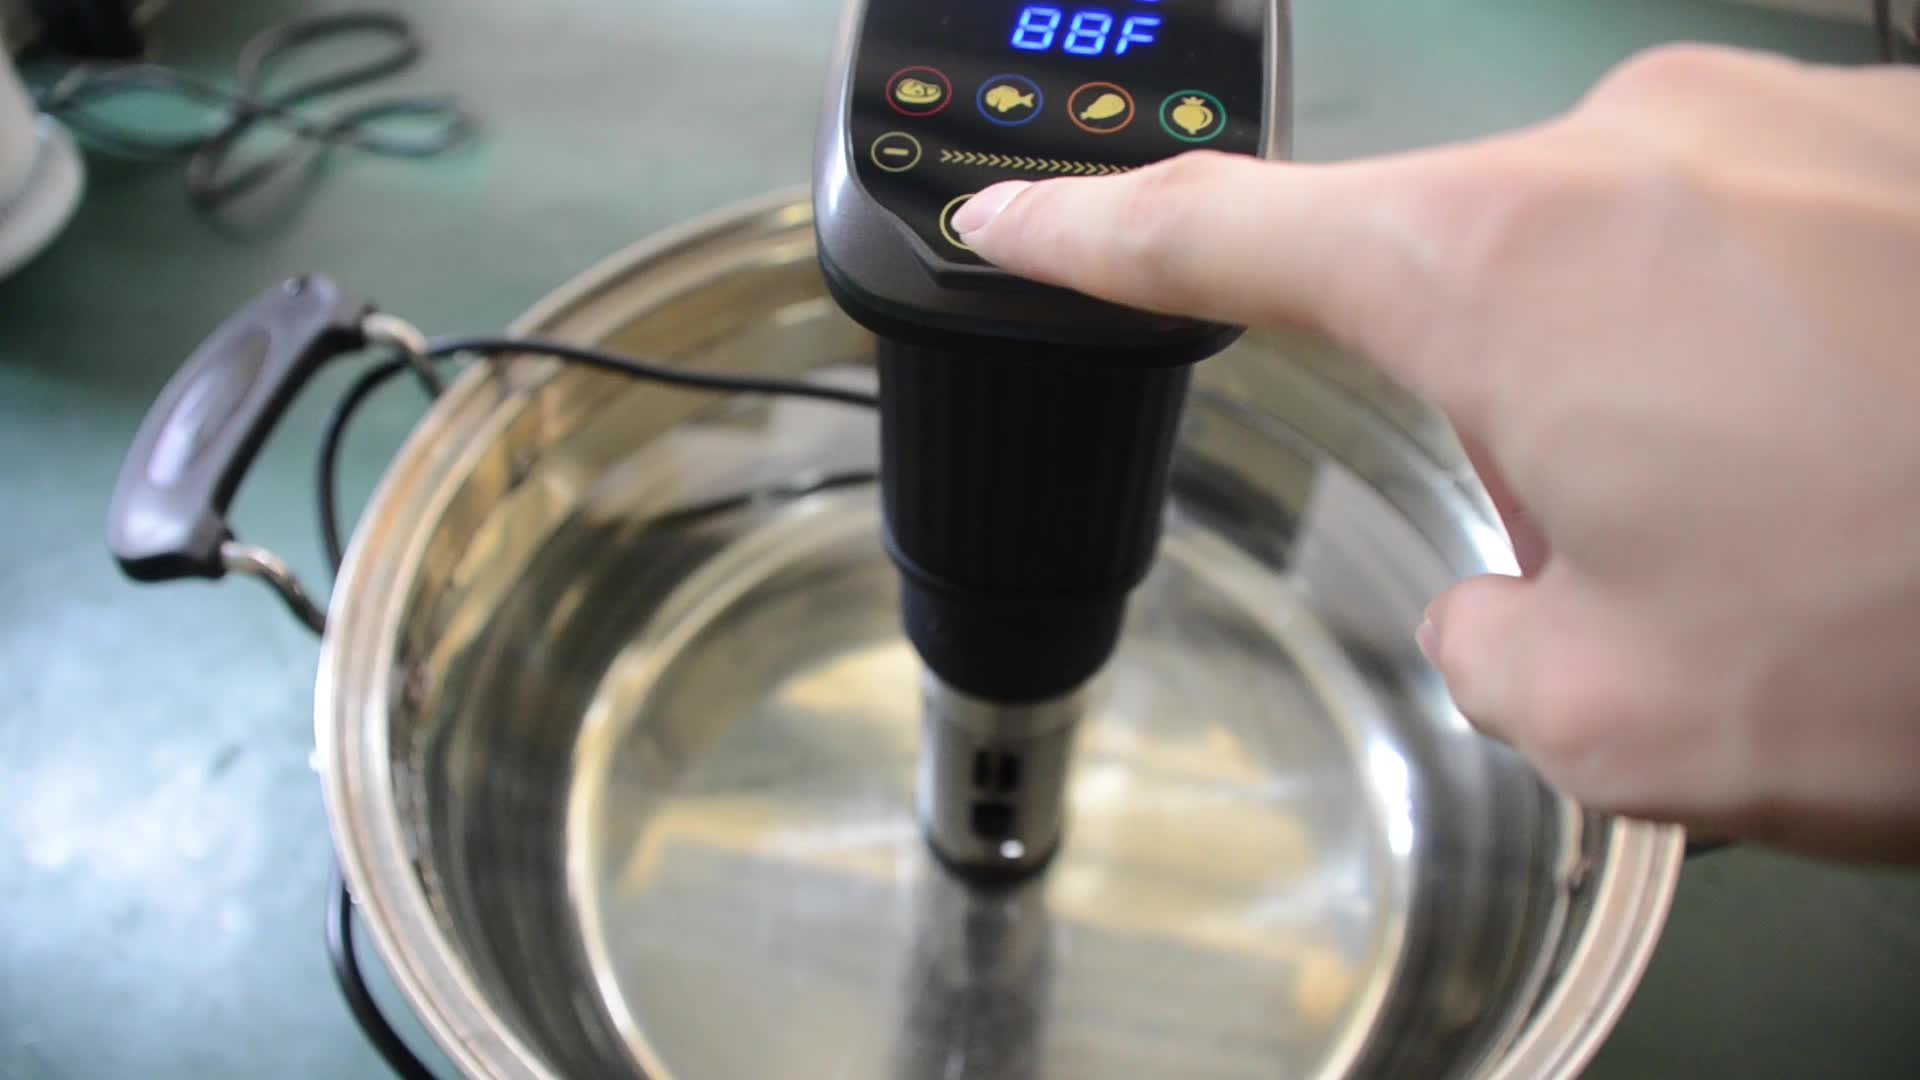 10 Best Sous Vide Machines for Cooking Enthusiasts  From Immersion Circulators to Water Baths